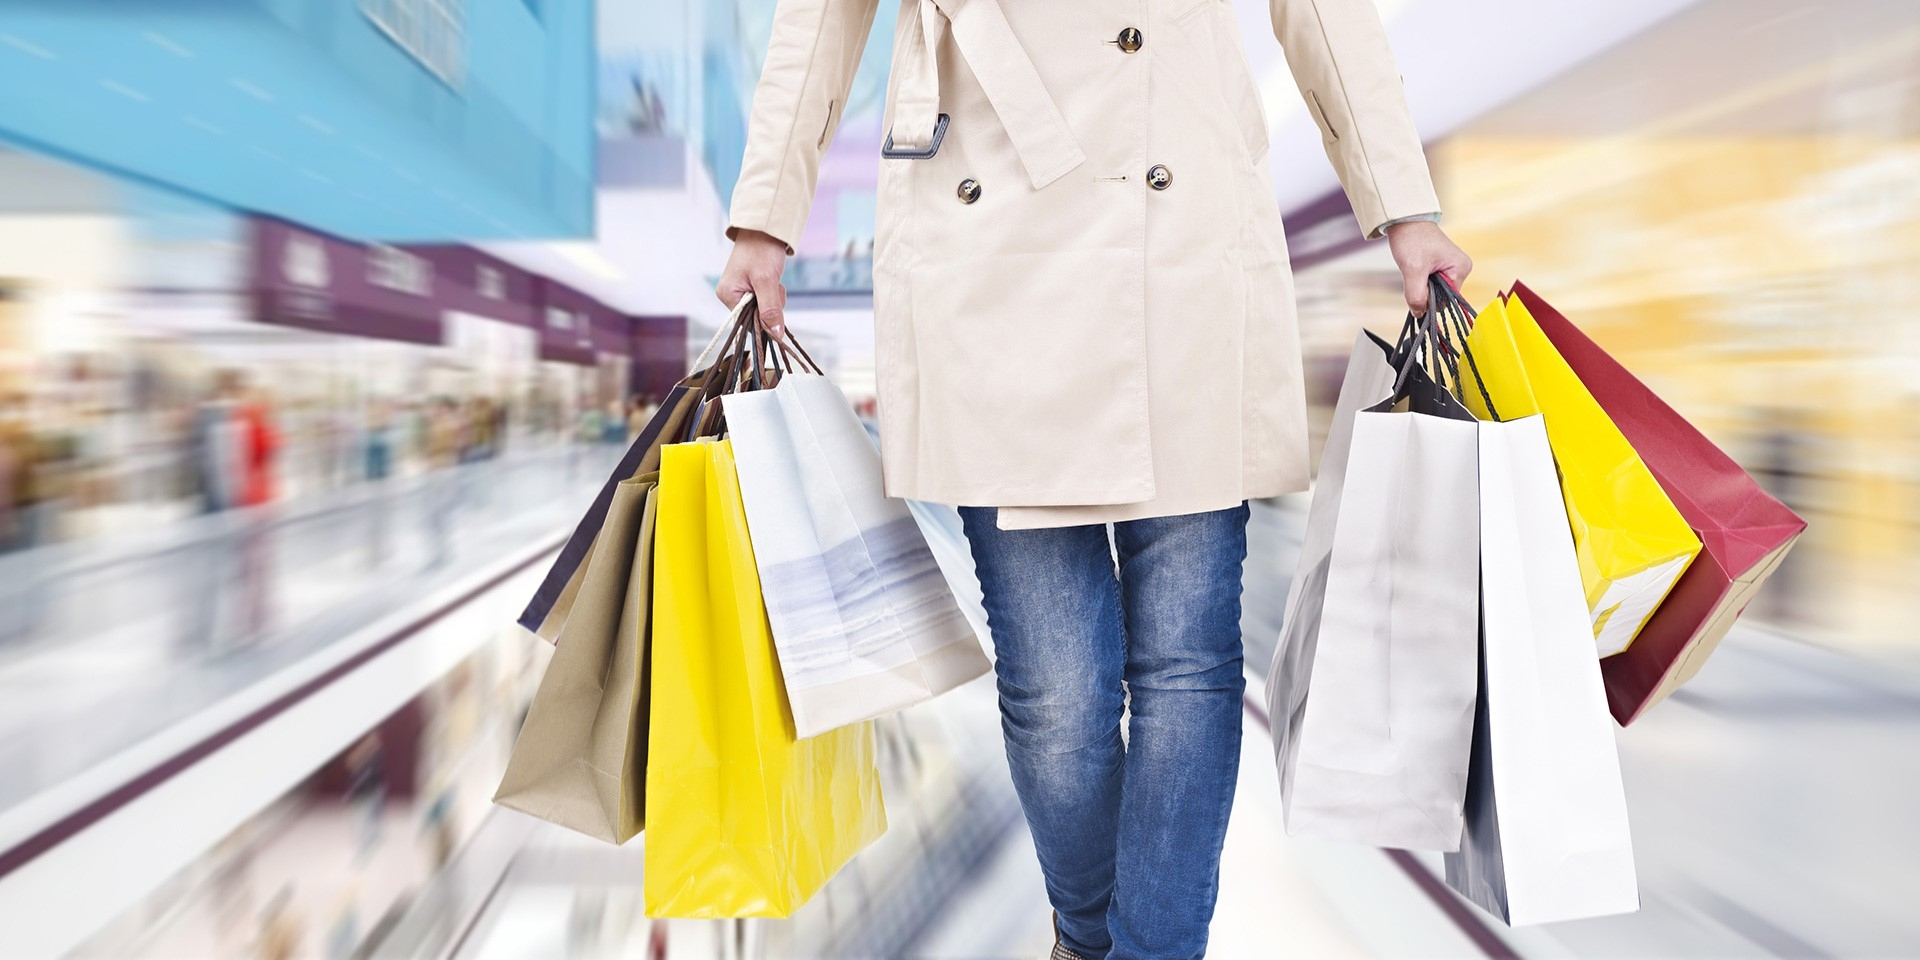 woman carrying two handfuls of shopping bags while walking through store.